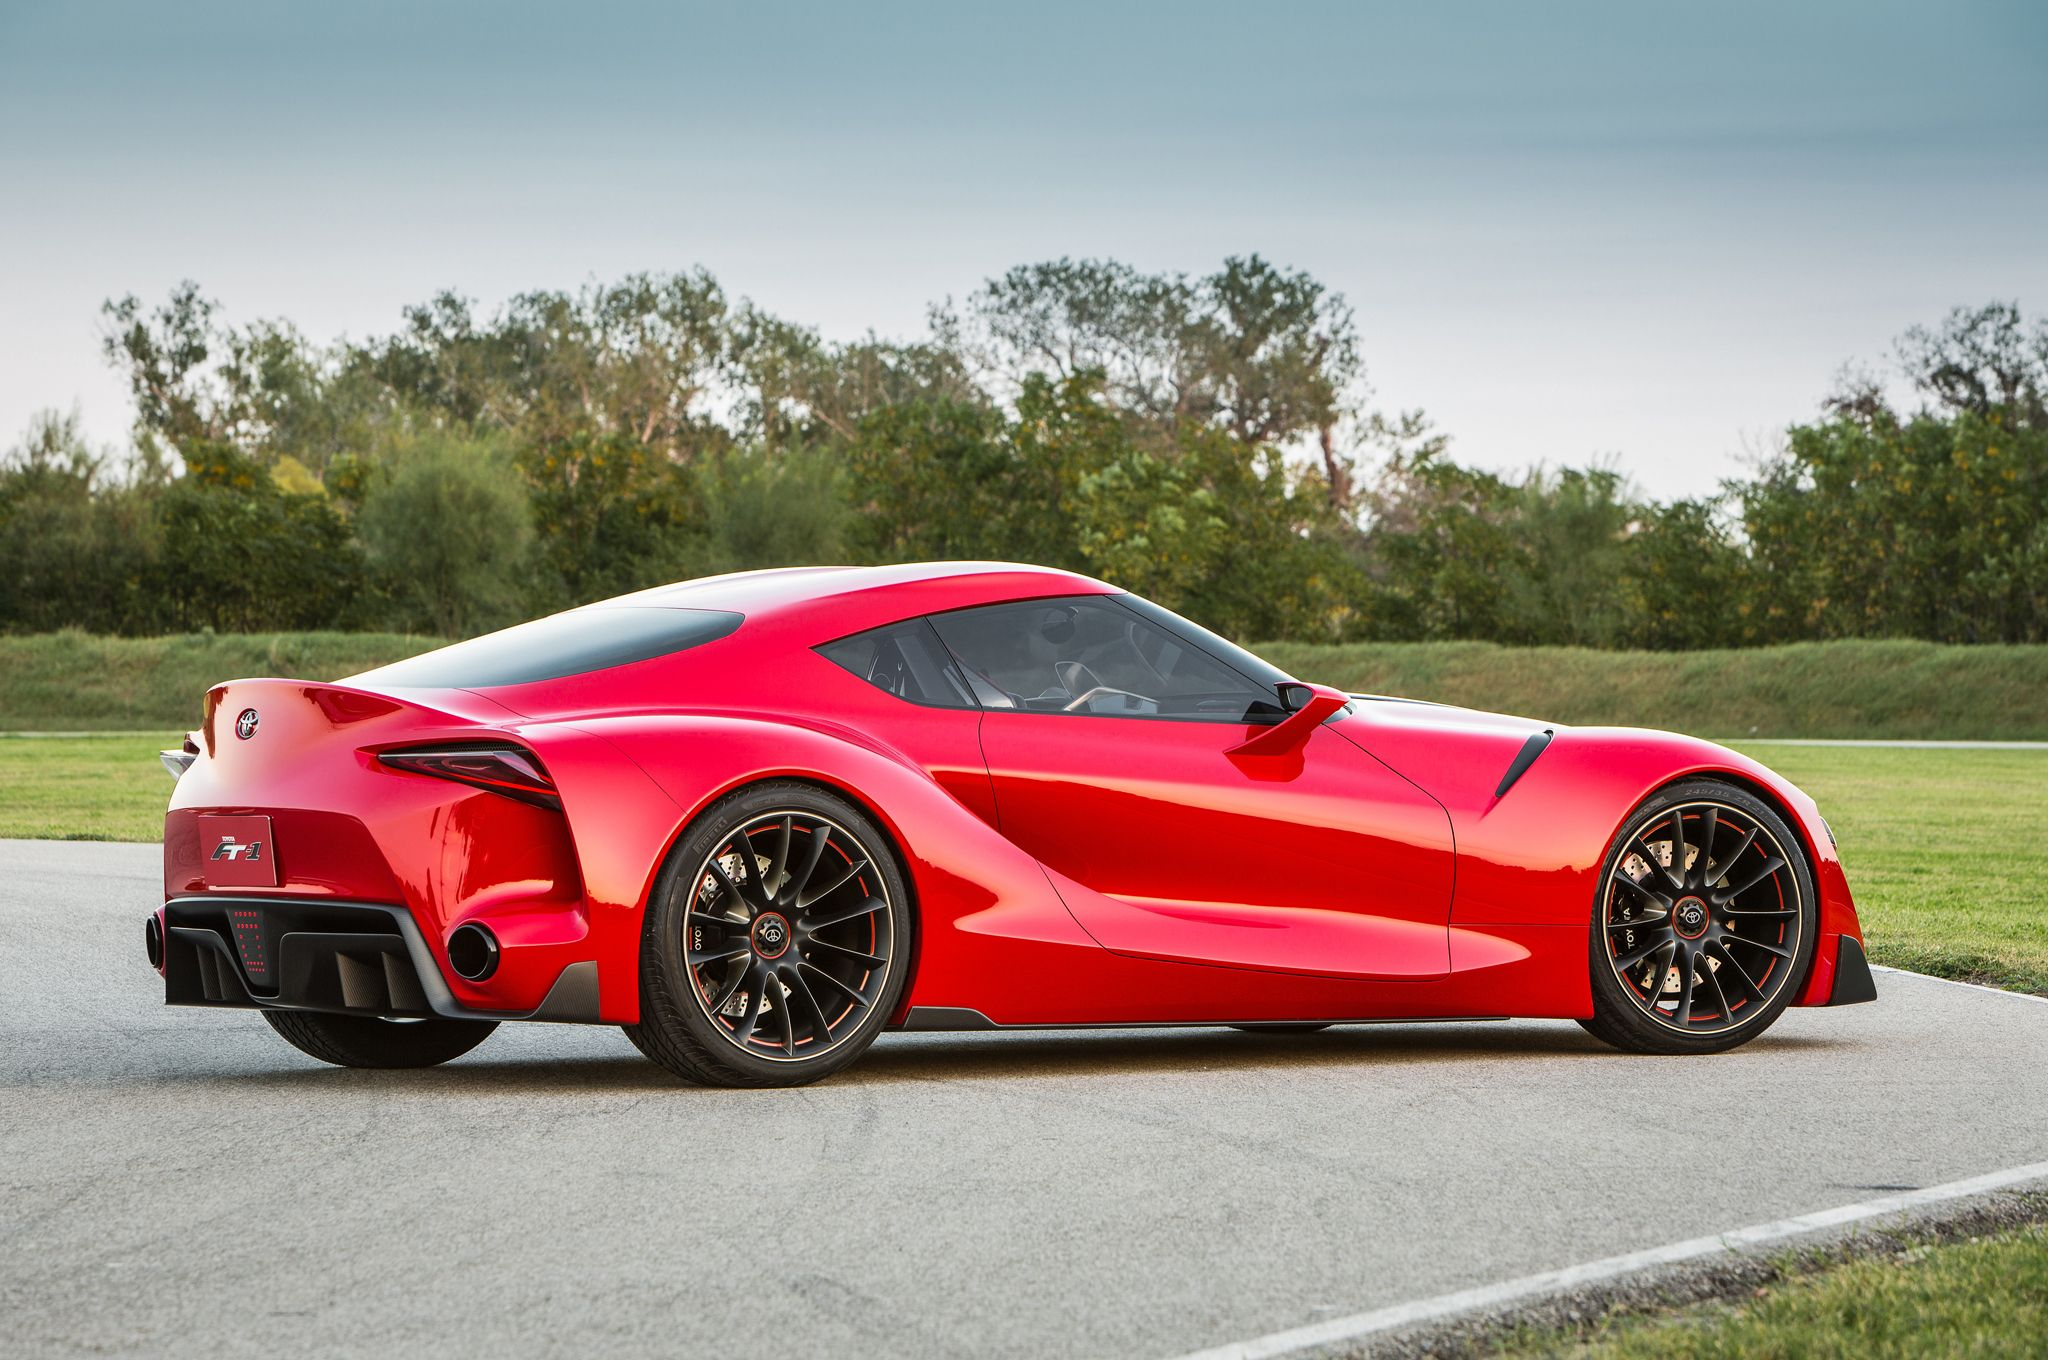 Toyota FT-1 Wallpapers | 2017 2018 Toyota Supra Forum FT-1 Concept